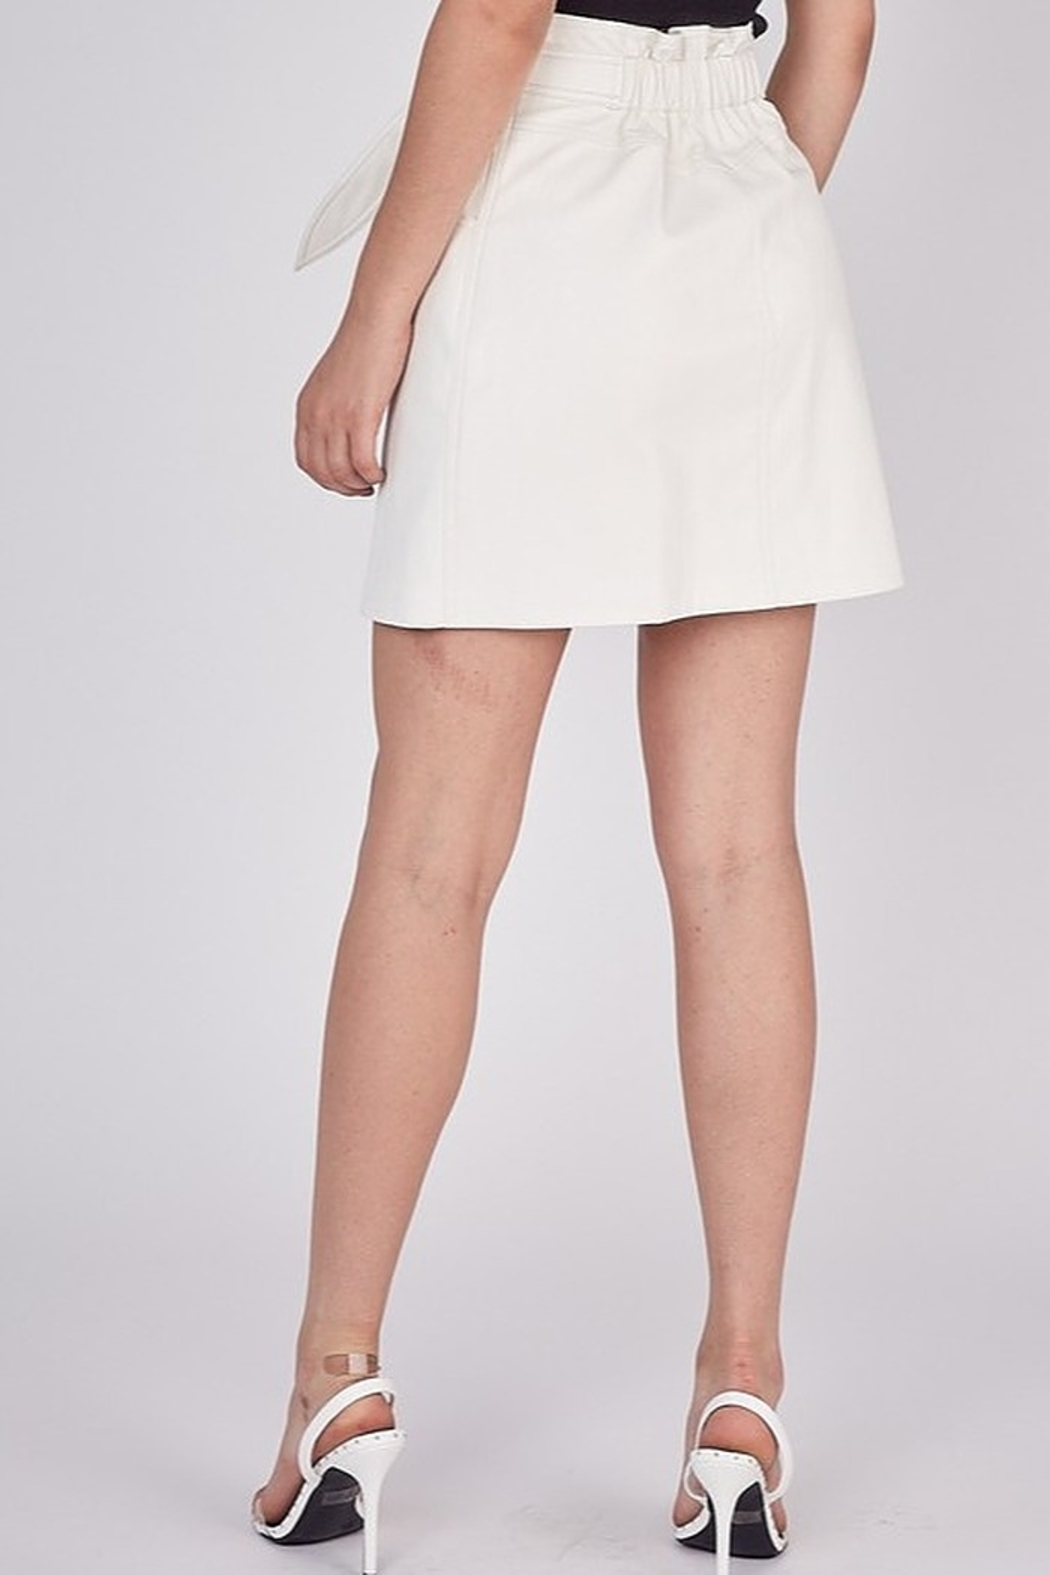 Idem Ditto  Faux Leather Skirt - Side Cropped Image